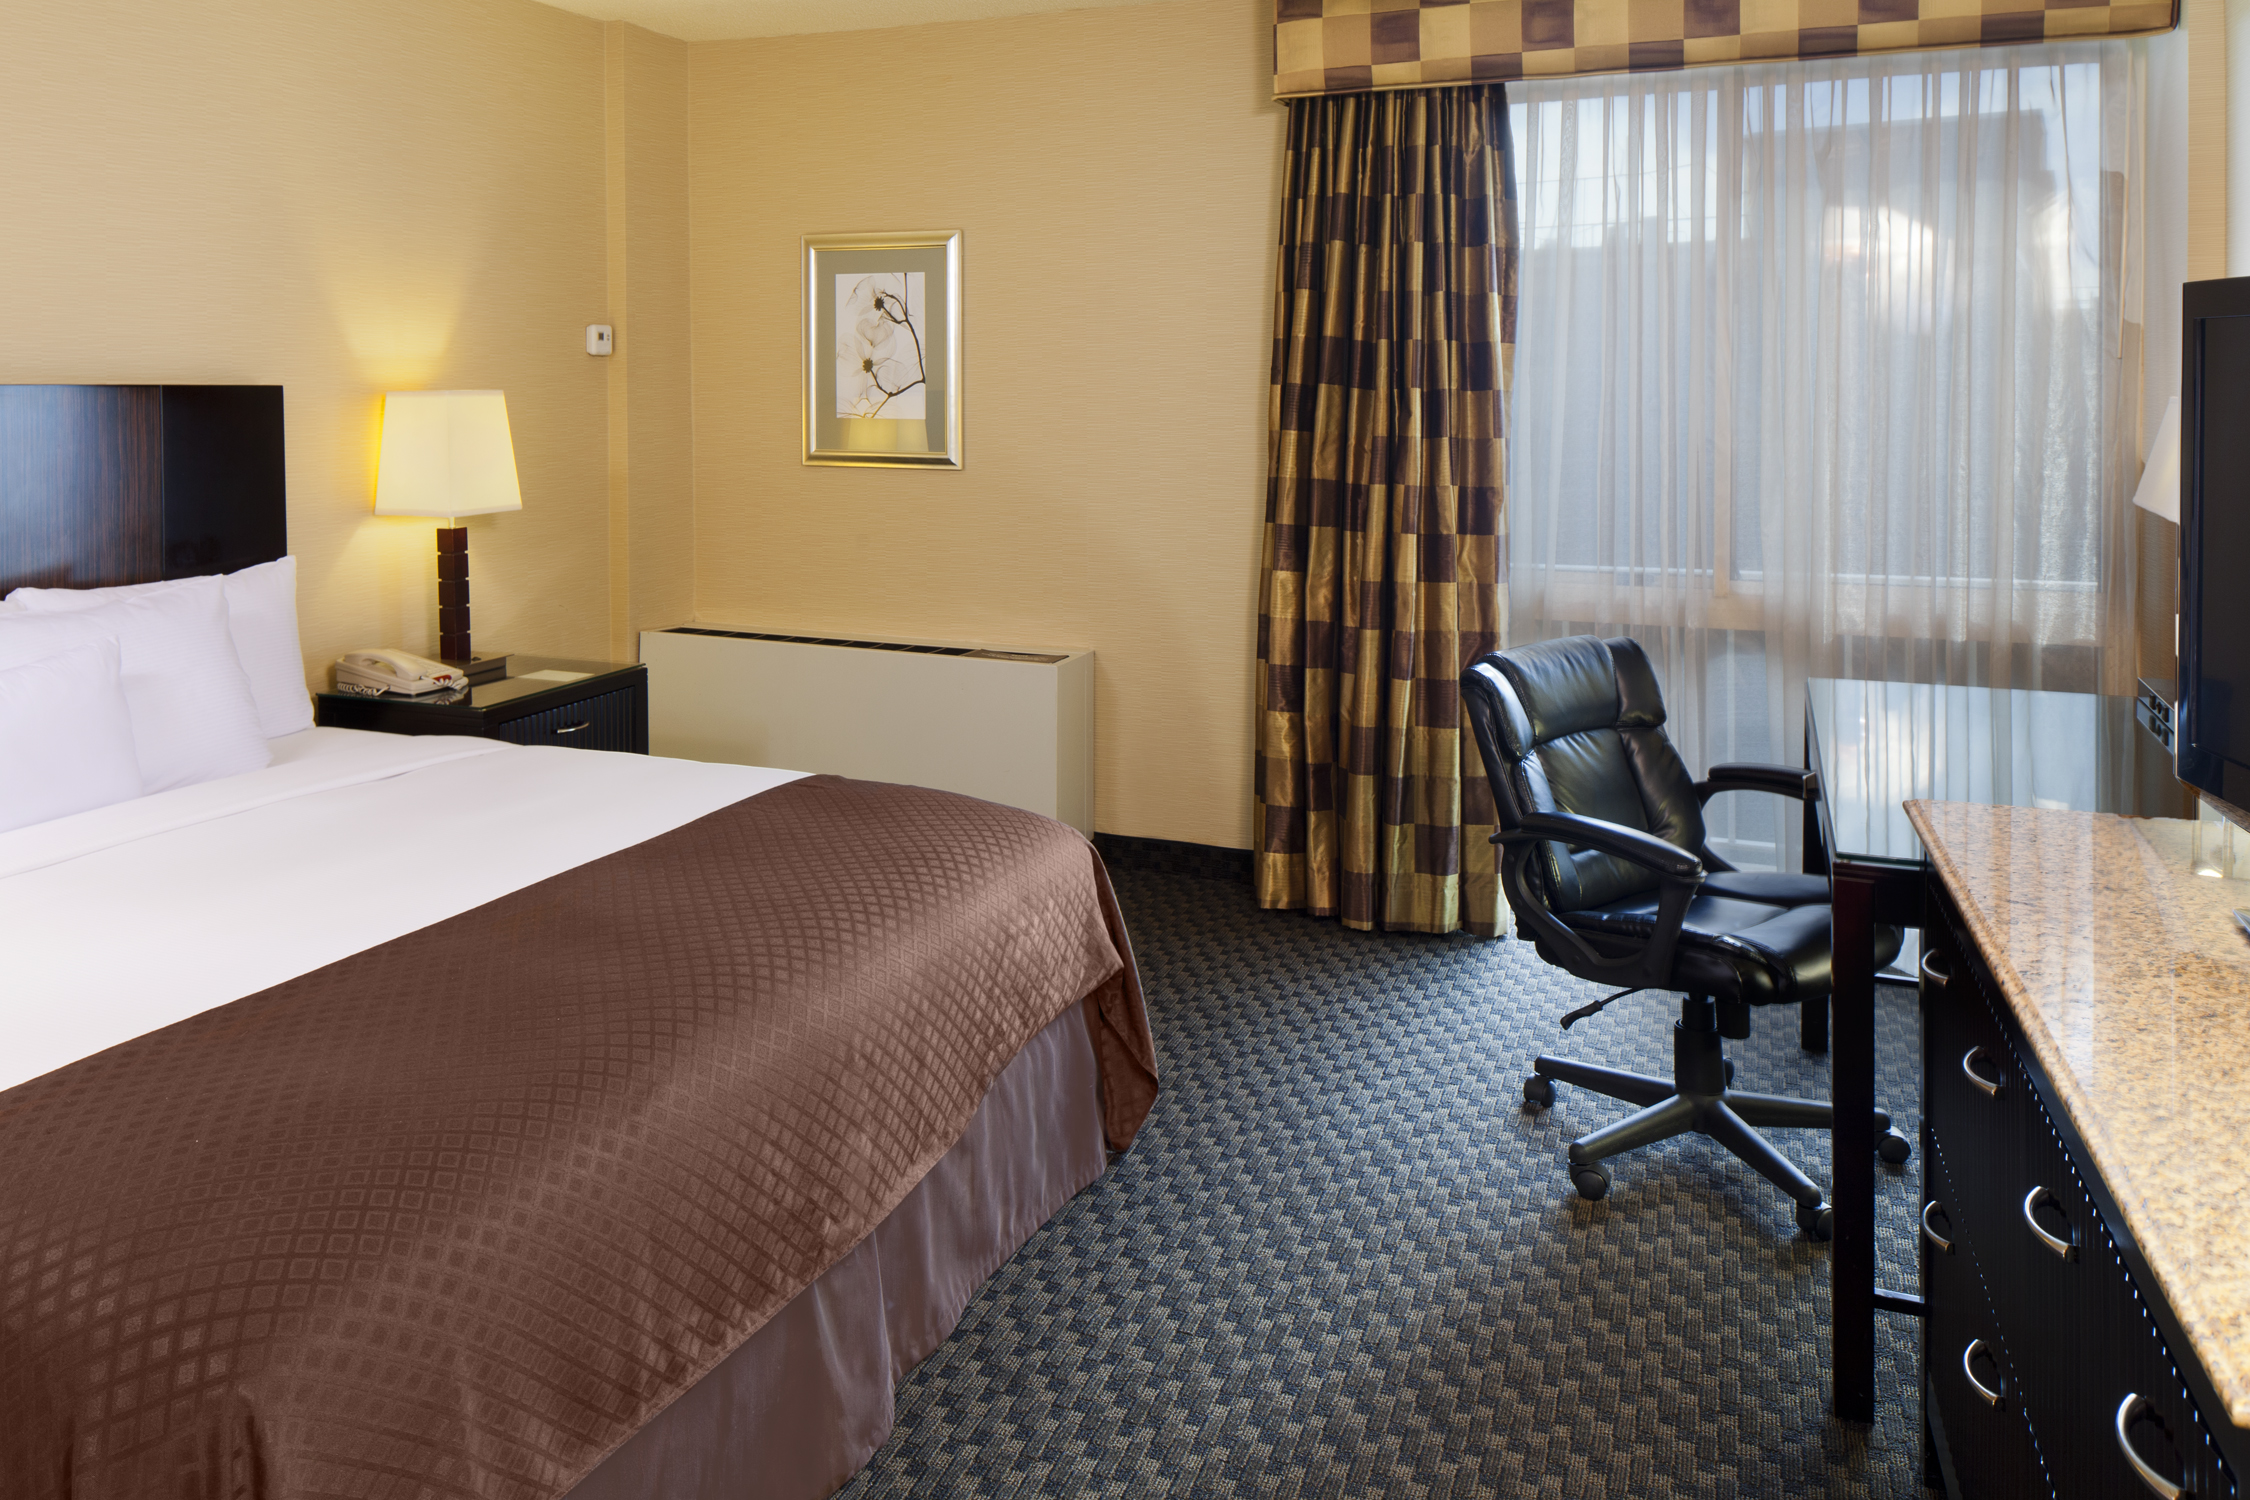 https://www.hotelsbyday.com/_data/default-hotel_image/0/2514/radisson-jfk-king-guestroom.jpg